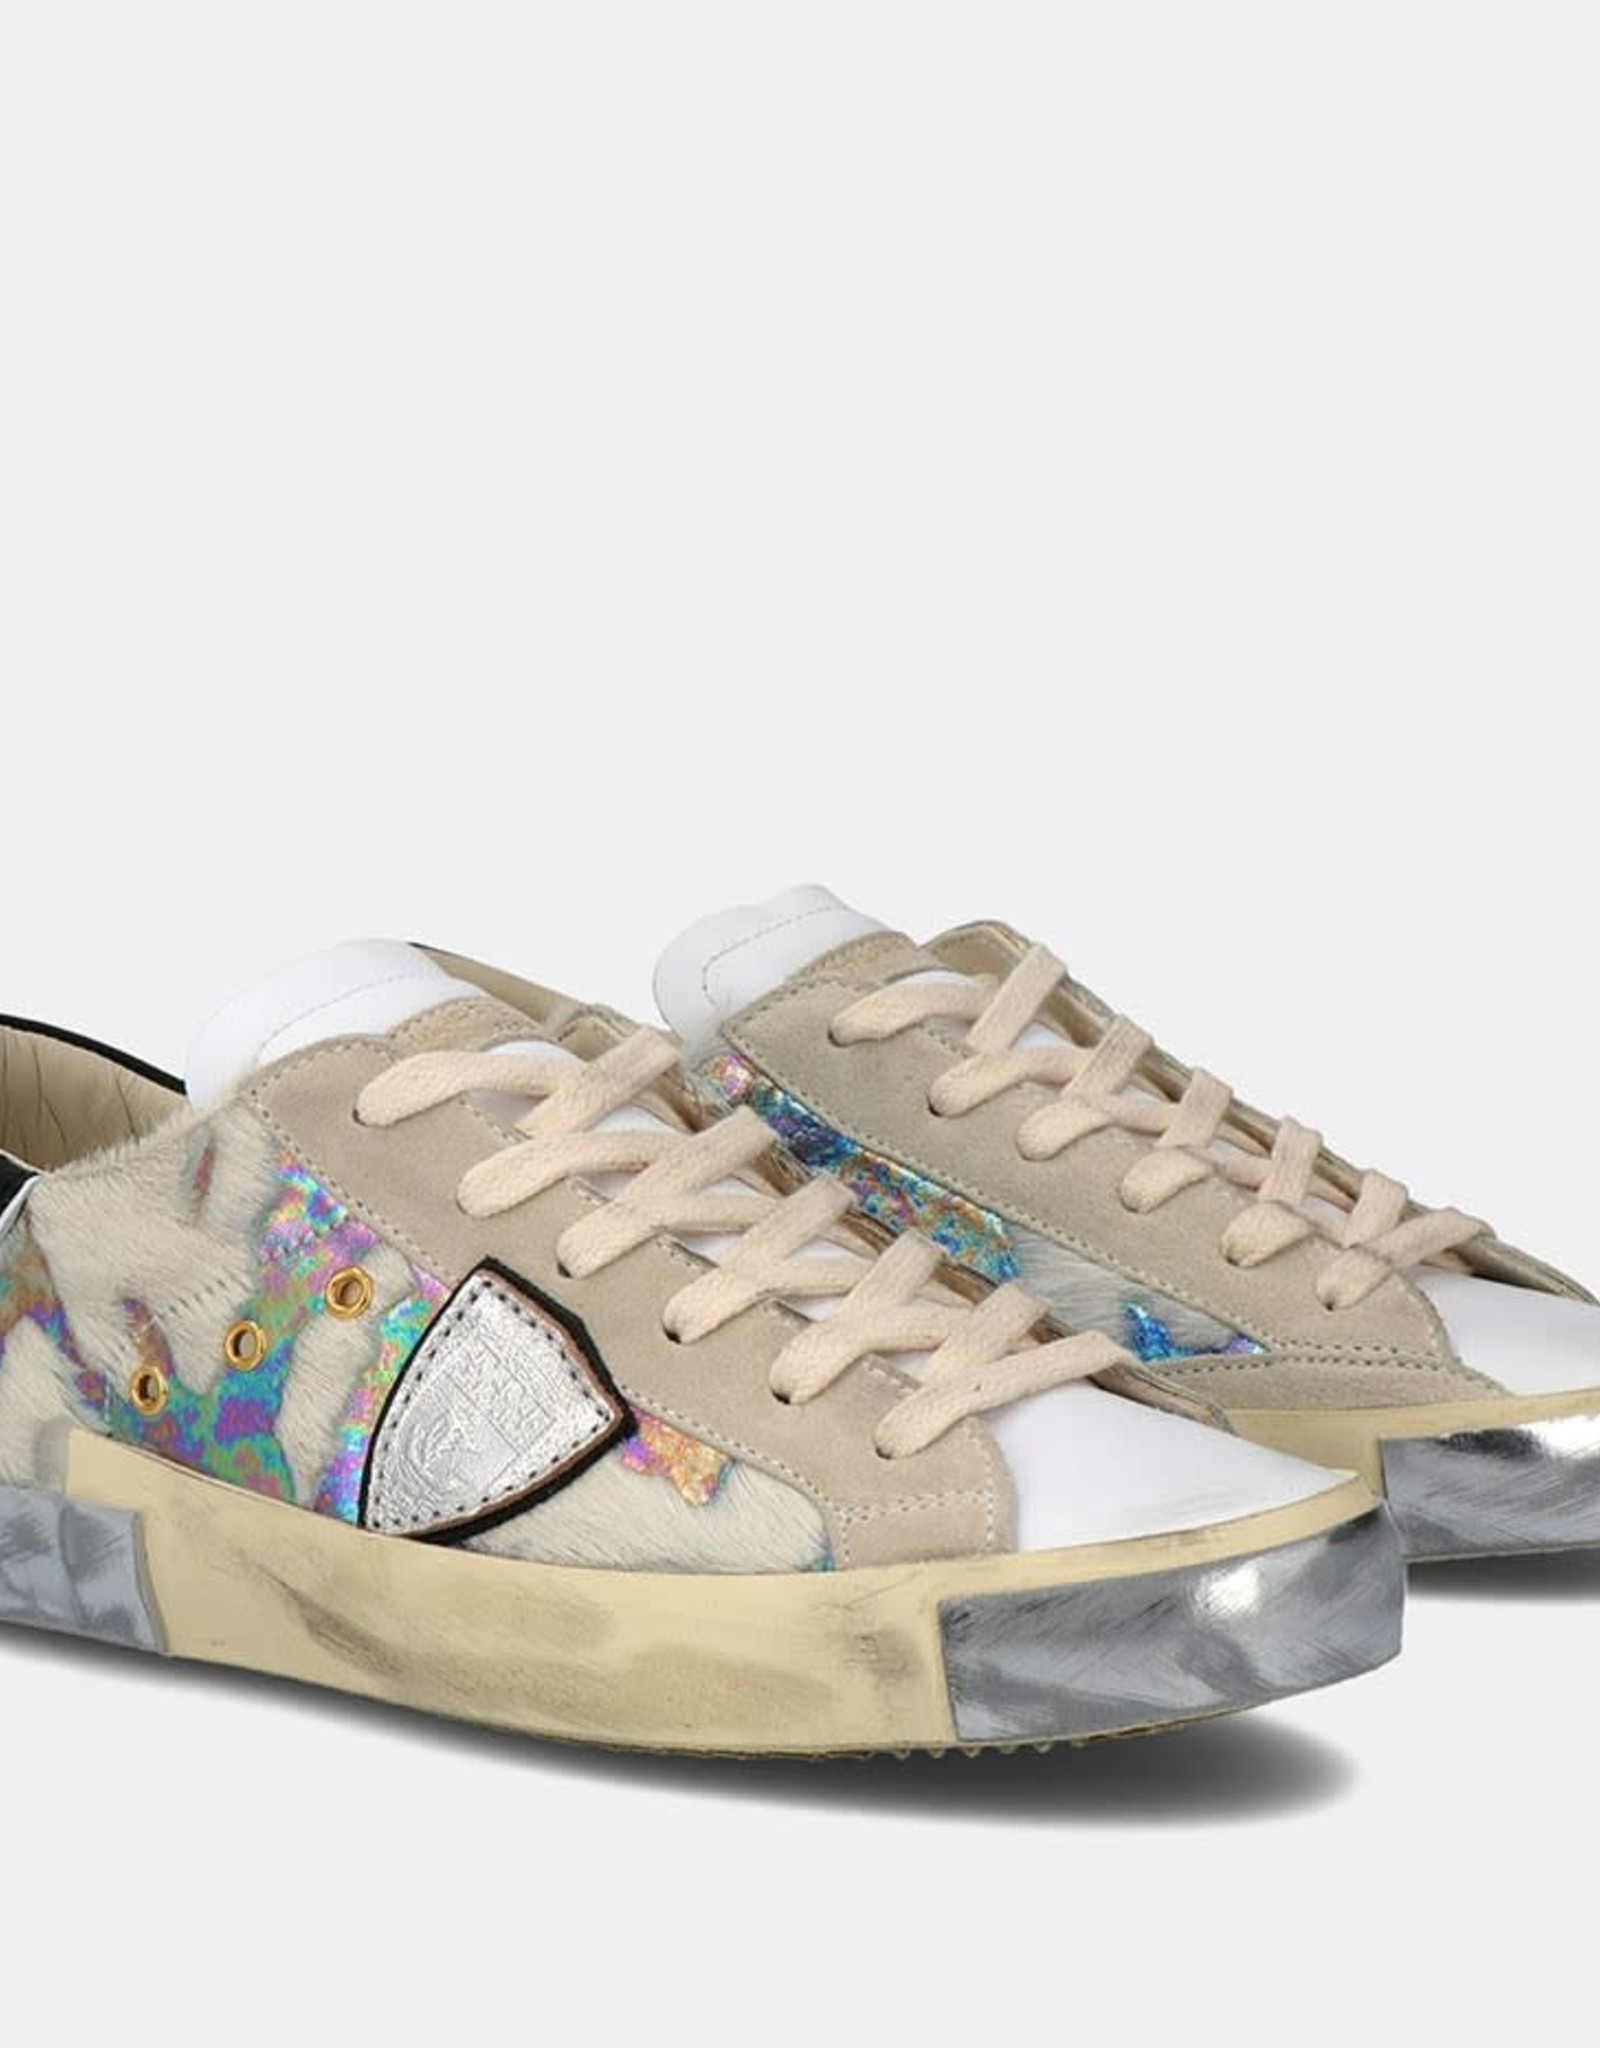 PHILIPPE MODEL Mixage Cheveux Sneaker